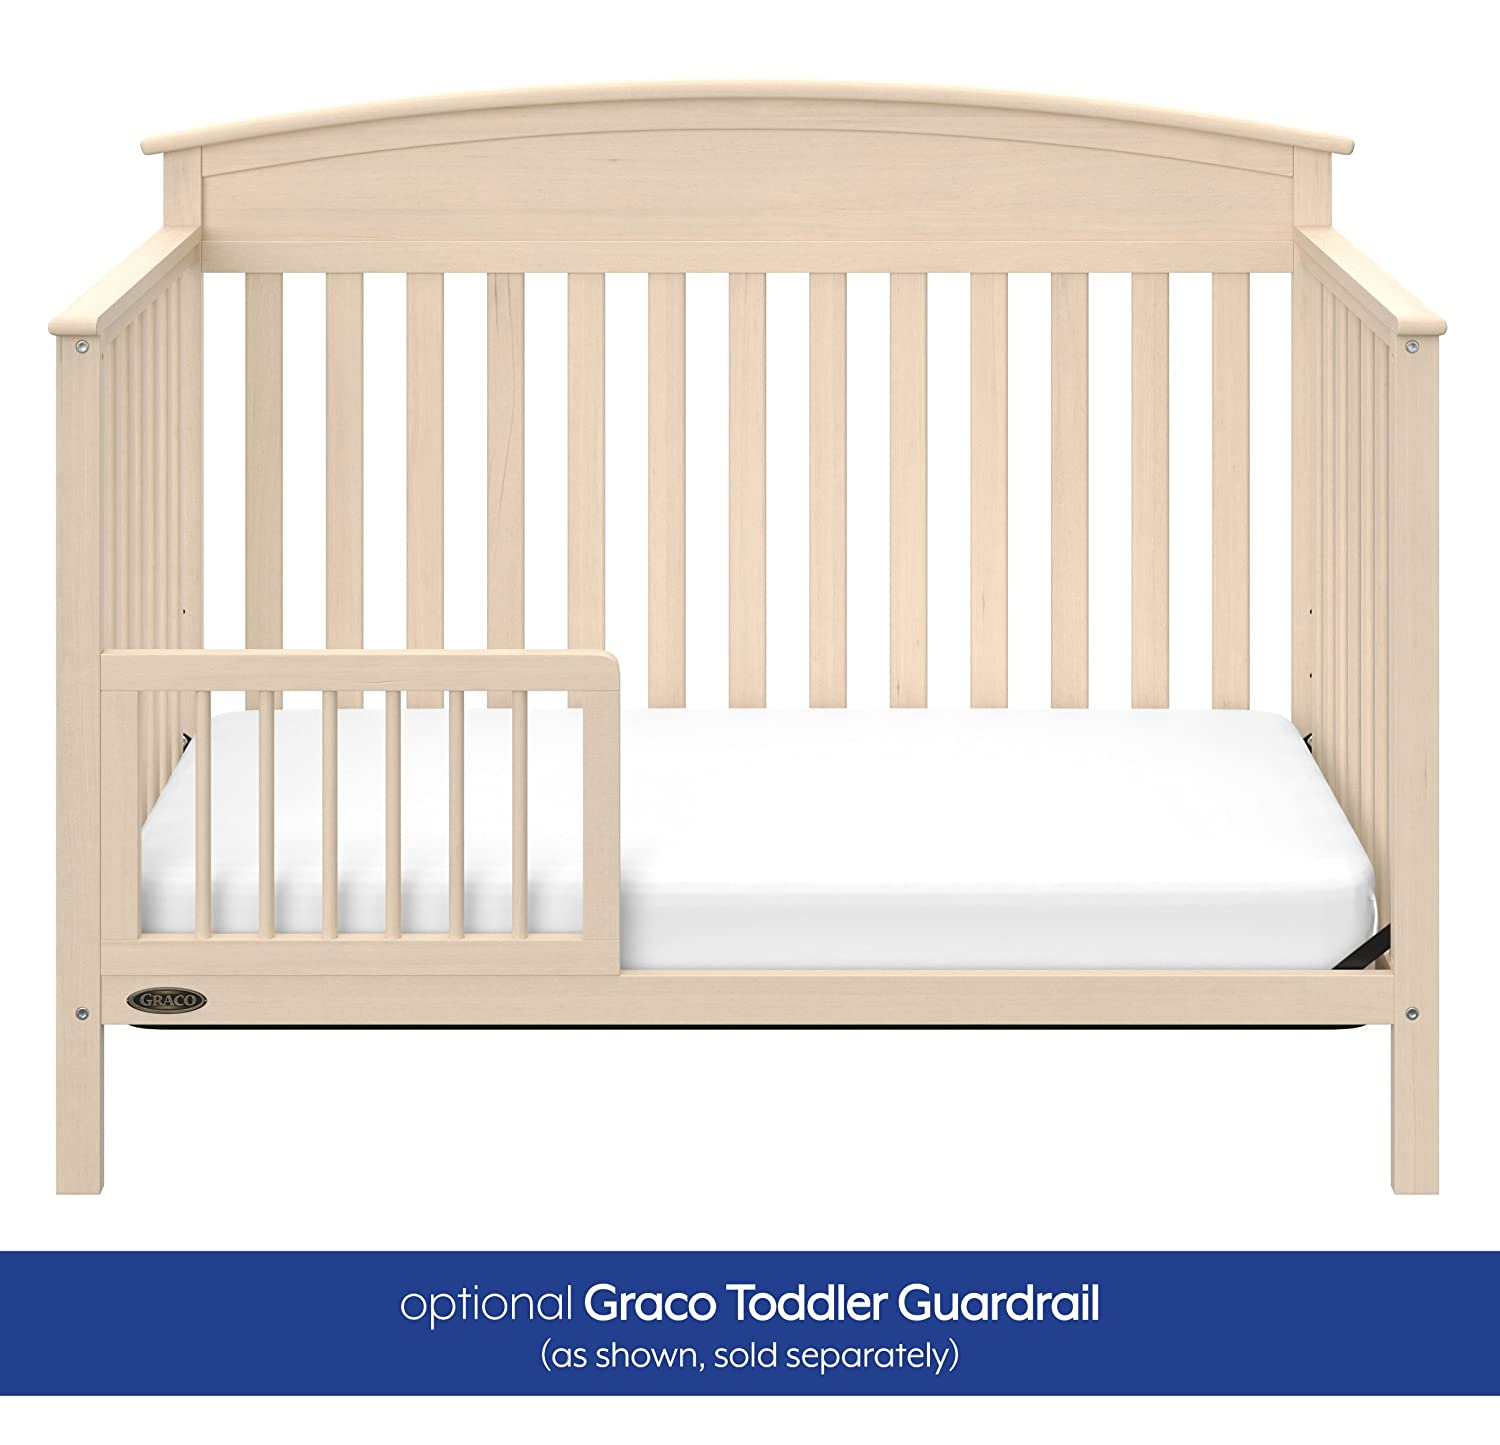 Pebble Gray Graco Toddler Guardrail